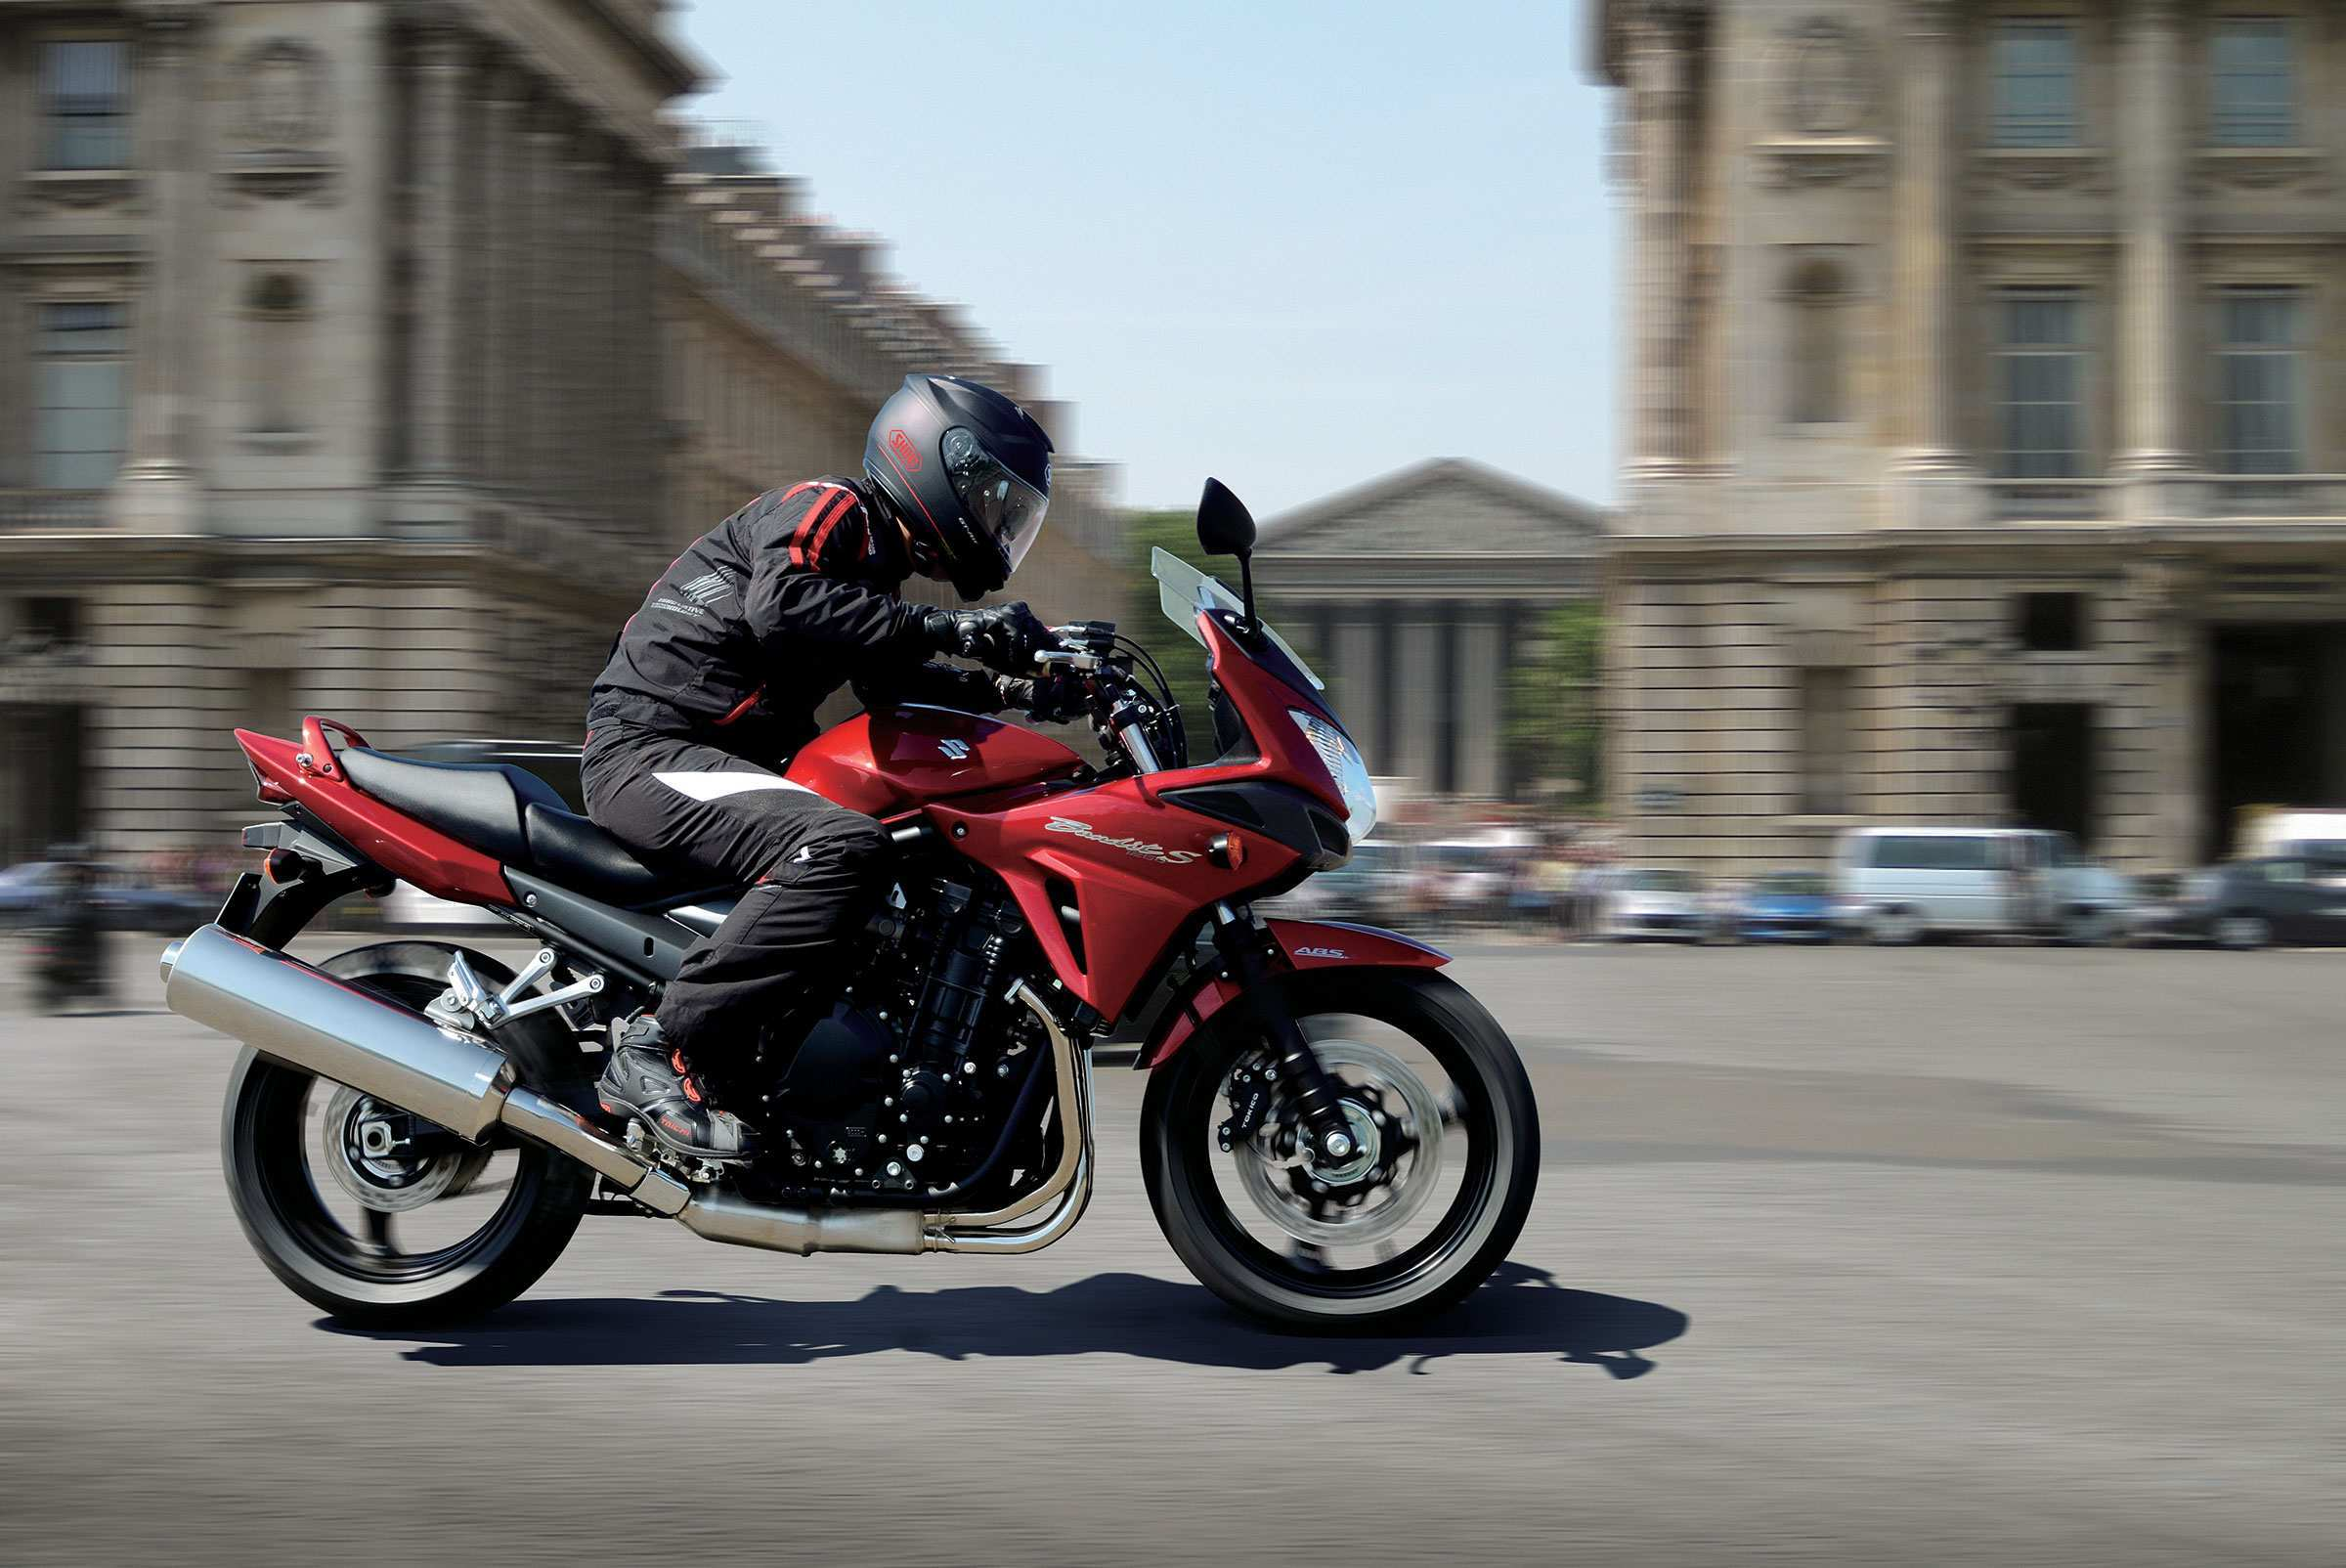 44 All New 2019 Suzuki Bandit 1250 History with 2019 Suzuki Bandit 1250